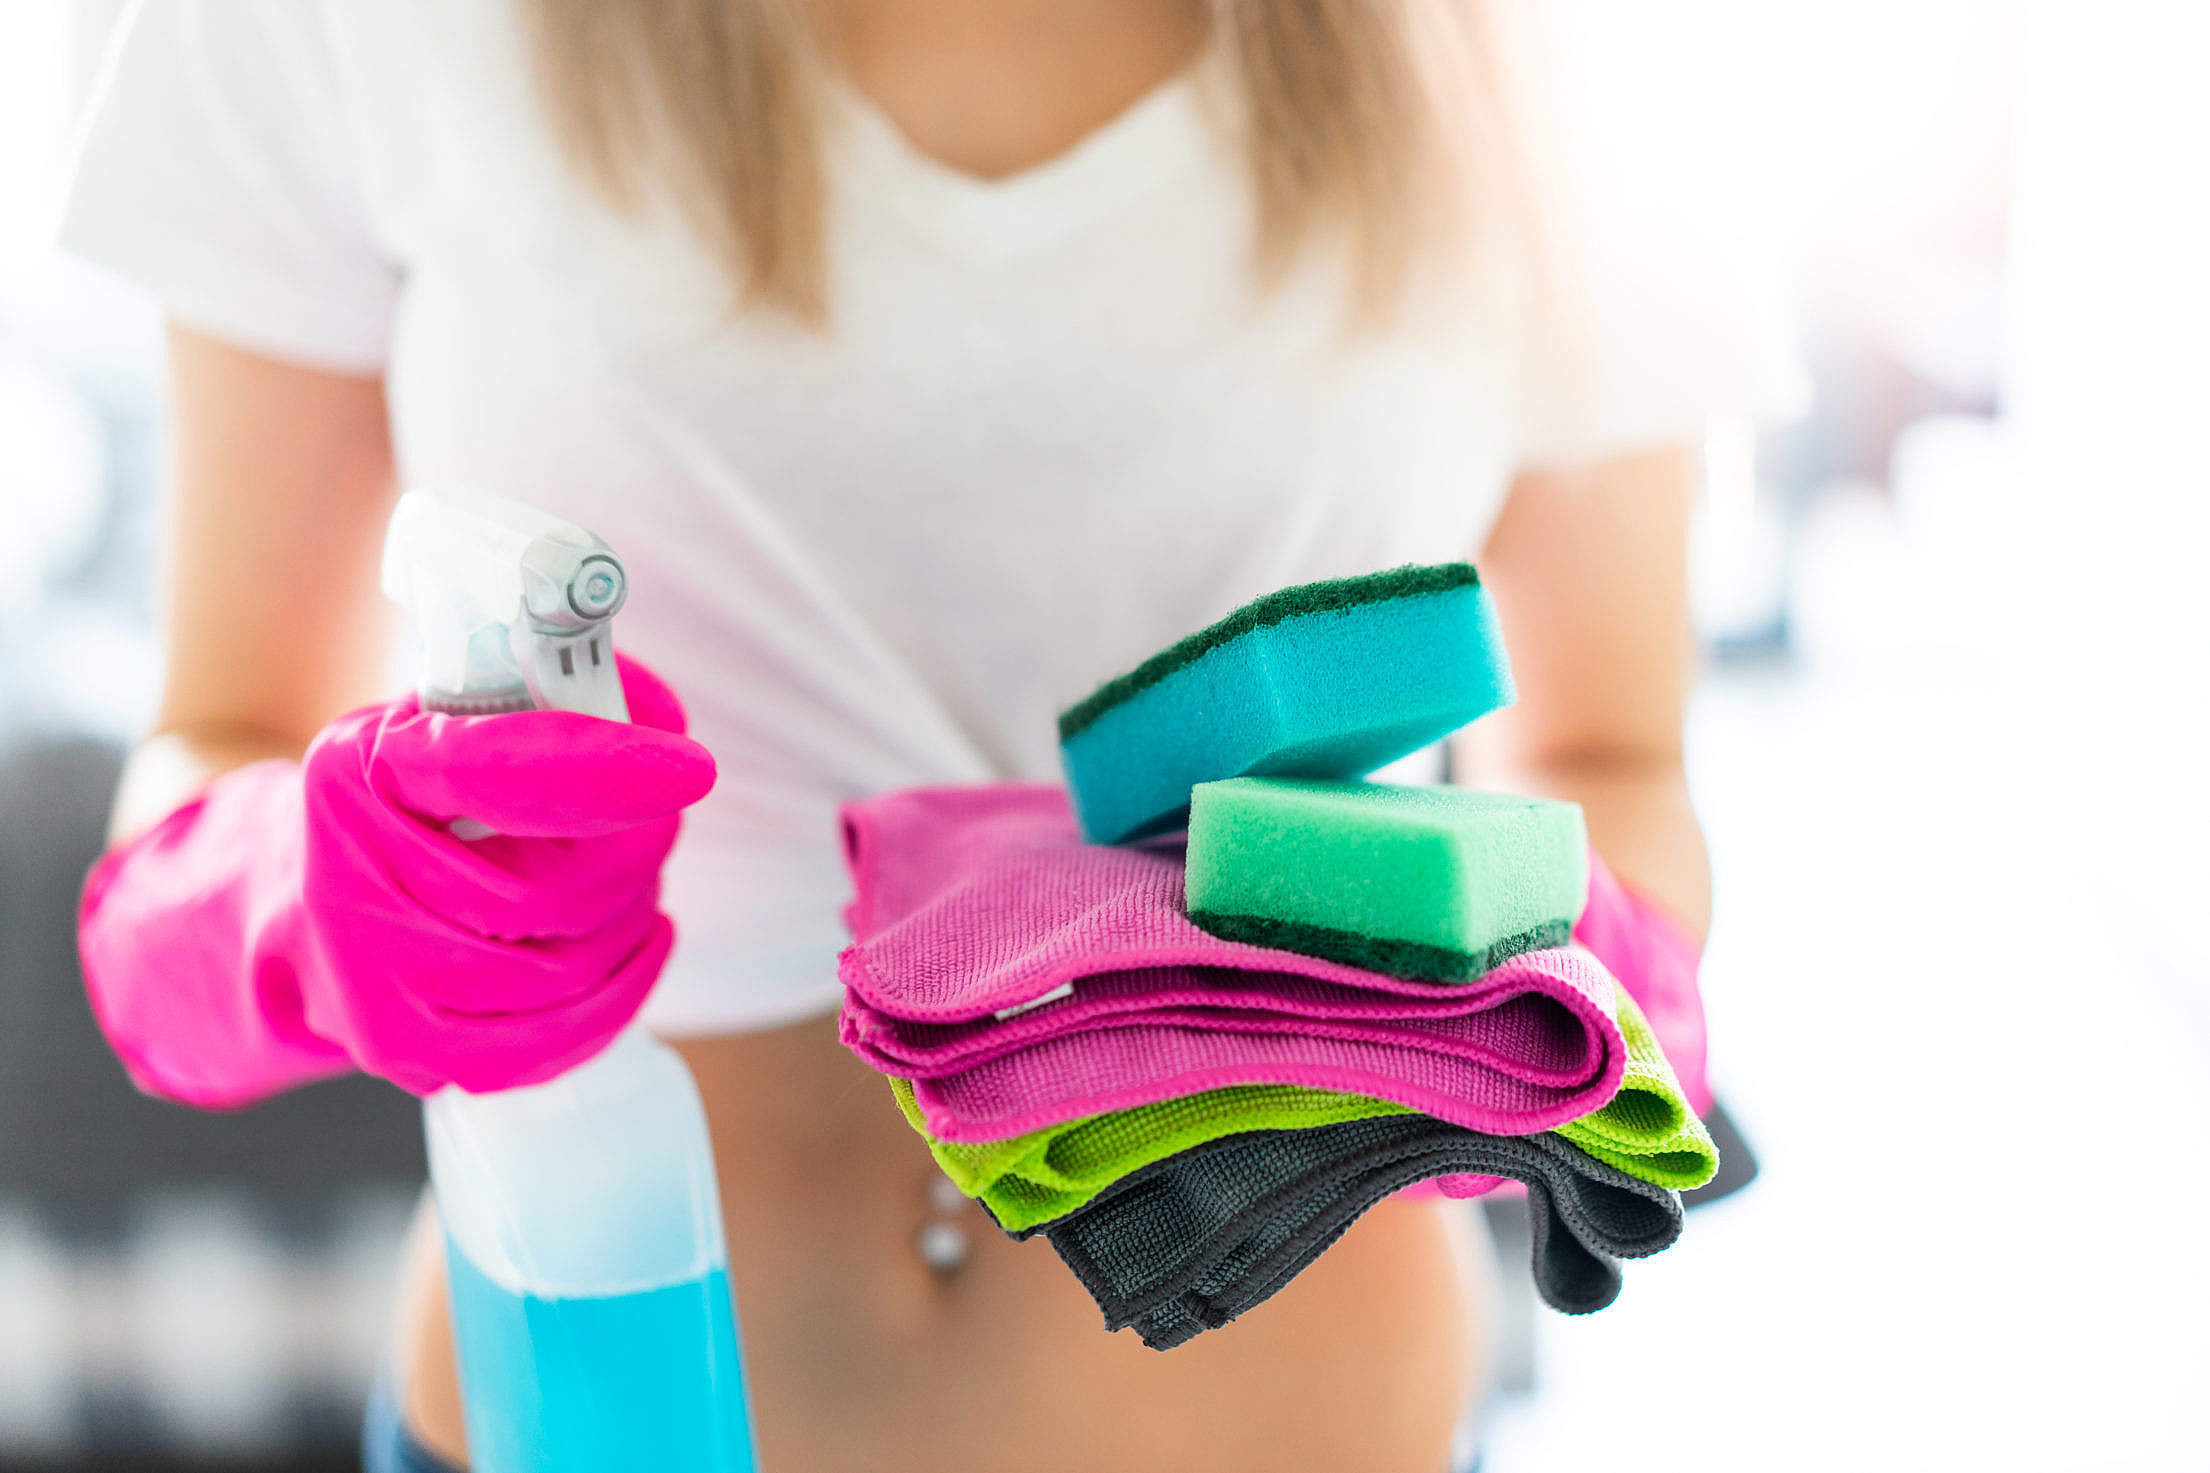 Woman Wearing Rubber Protective Gloves and Holding Spray Detergent and Rags Free Stock Photo